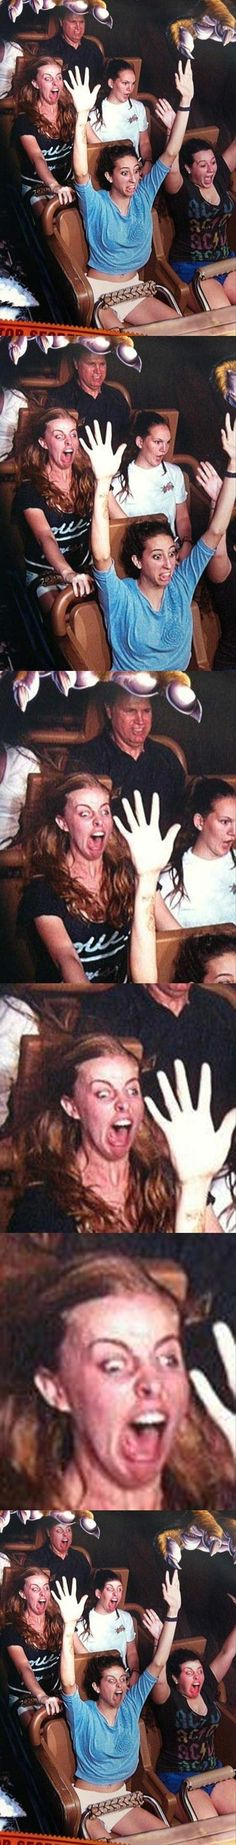 Funny roller coaster pictures. I'm seriously crying I'm laughing so hard.... the girl in the black omg.